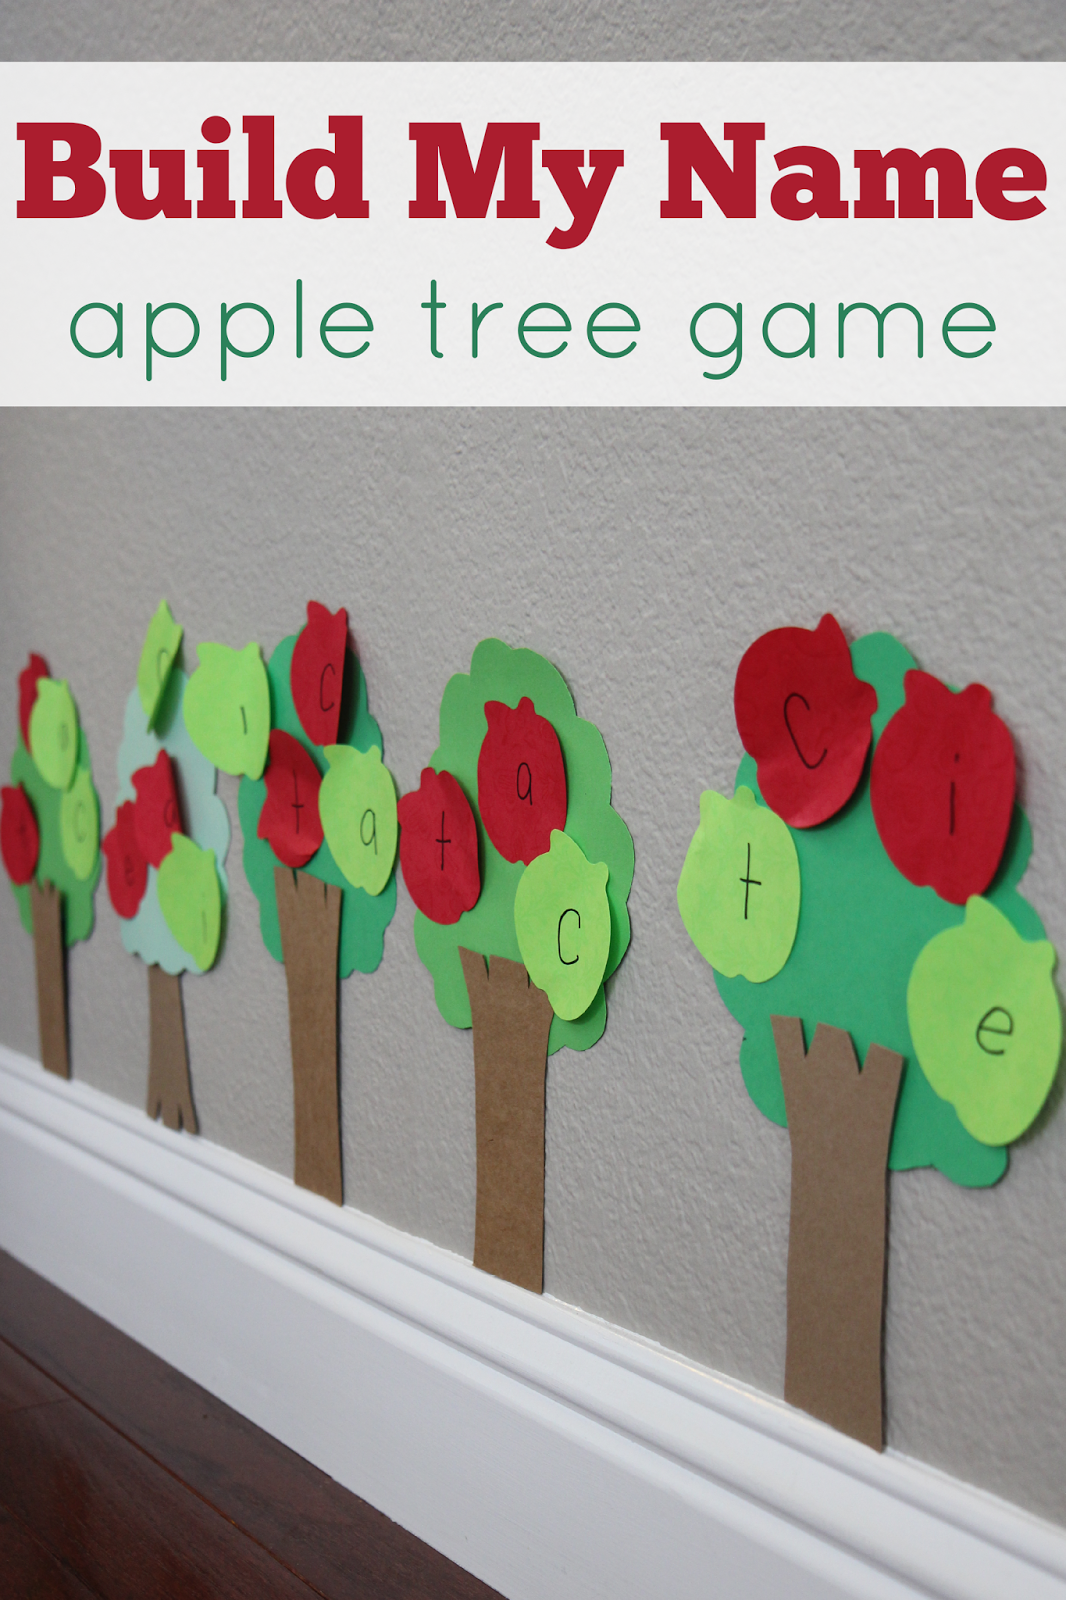 Build My Name Apple Tree Game Apple activities, Name